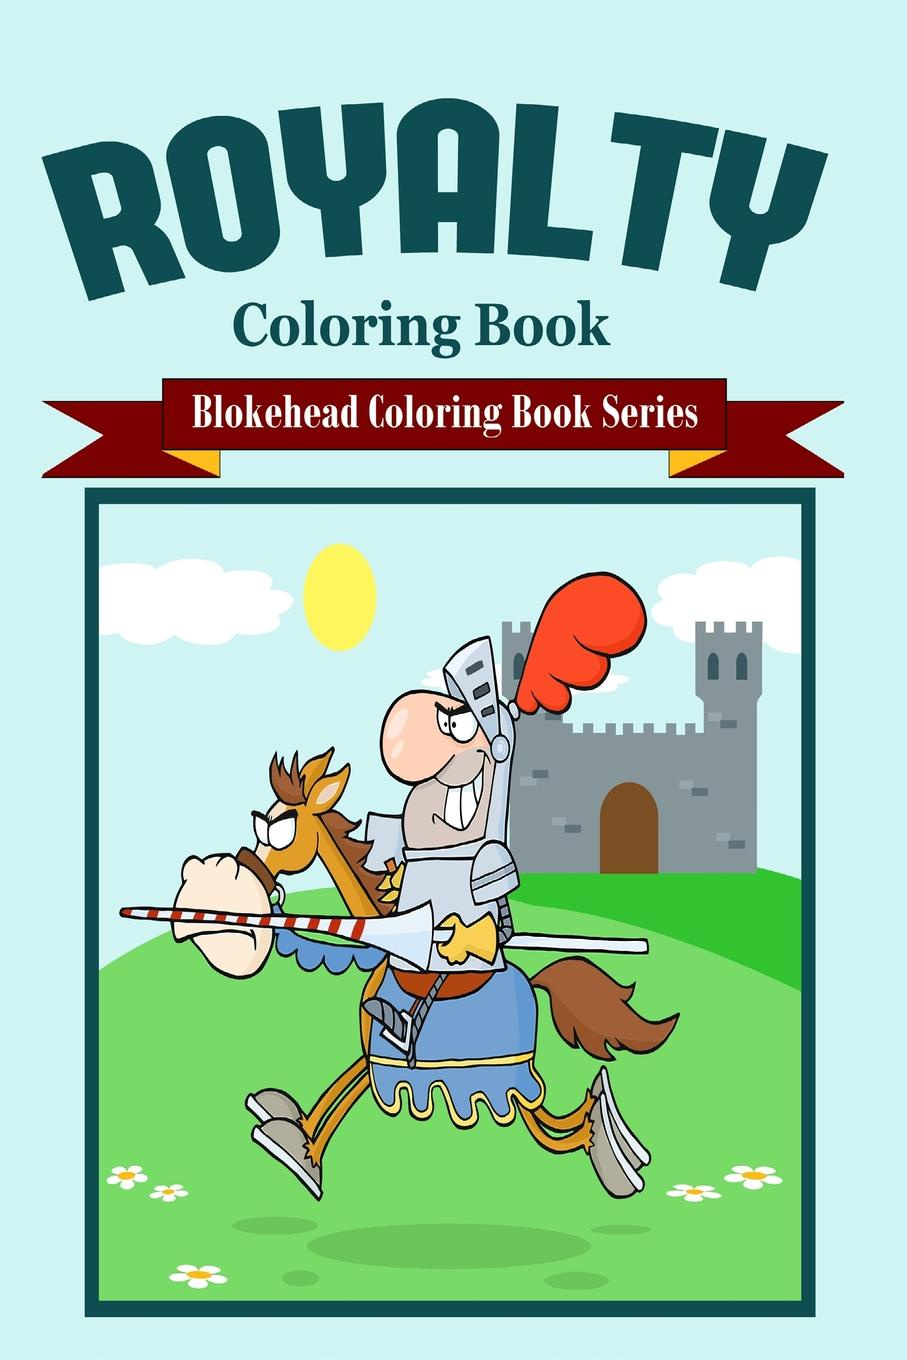 The Blokehead Royalty Coloring Book kings and queens